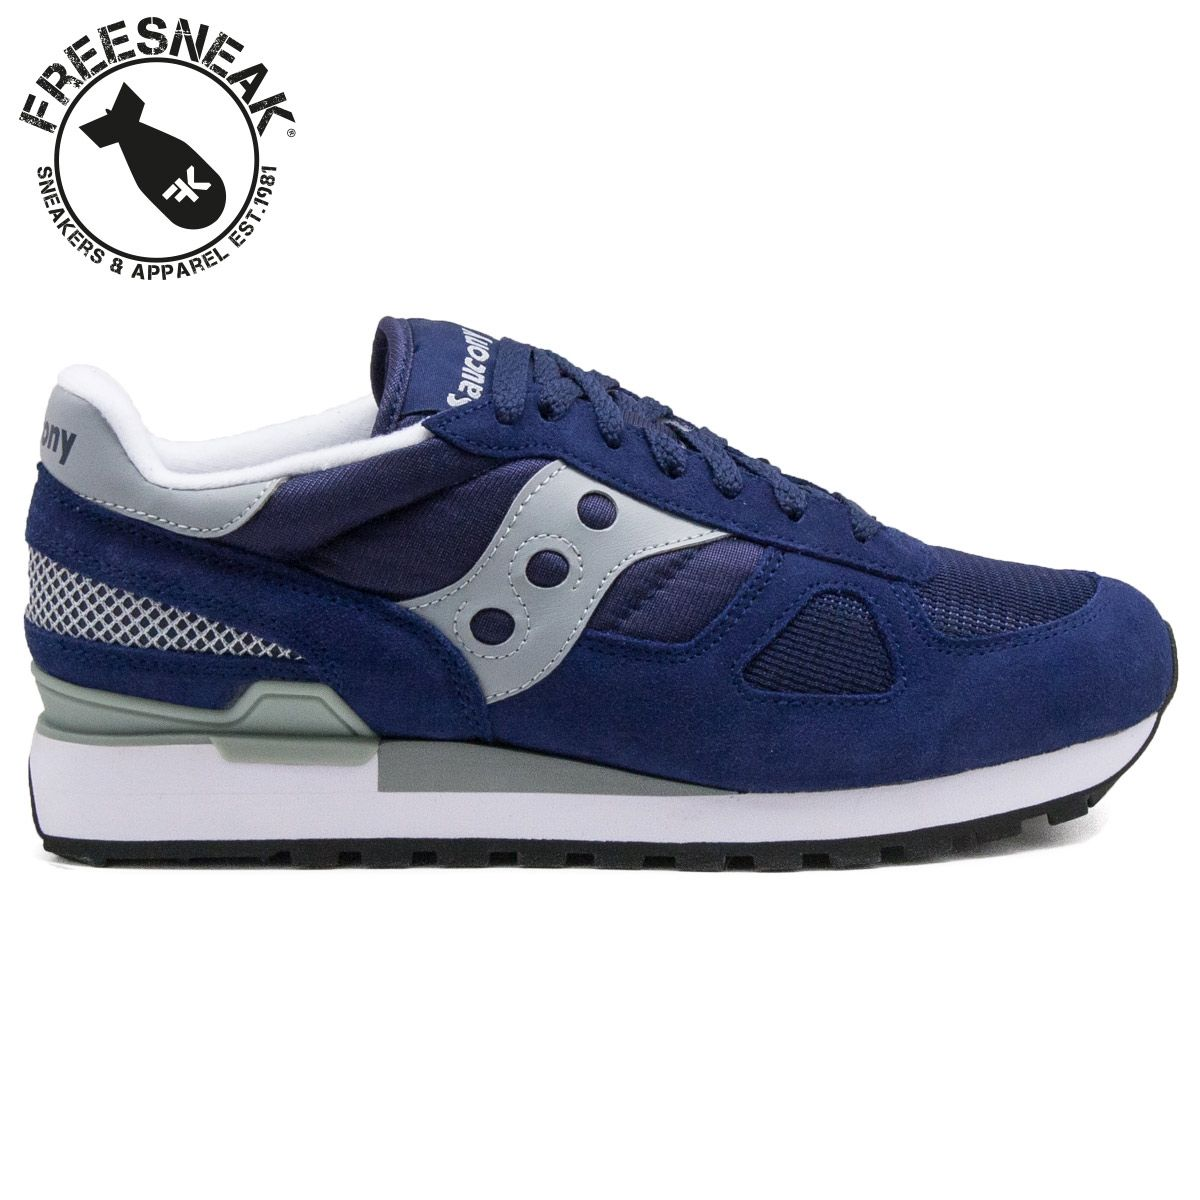 saucony shadow grigie e gialle